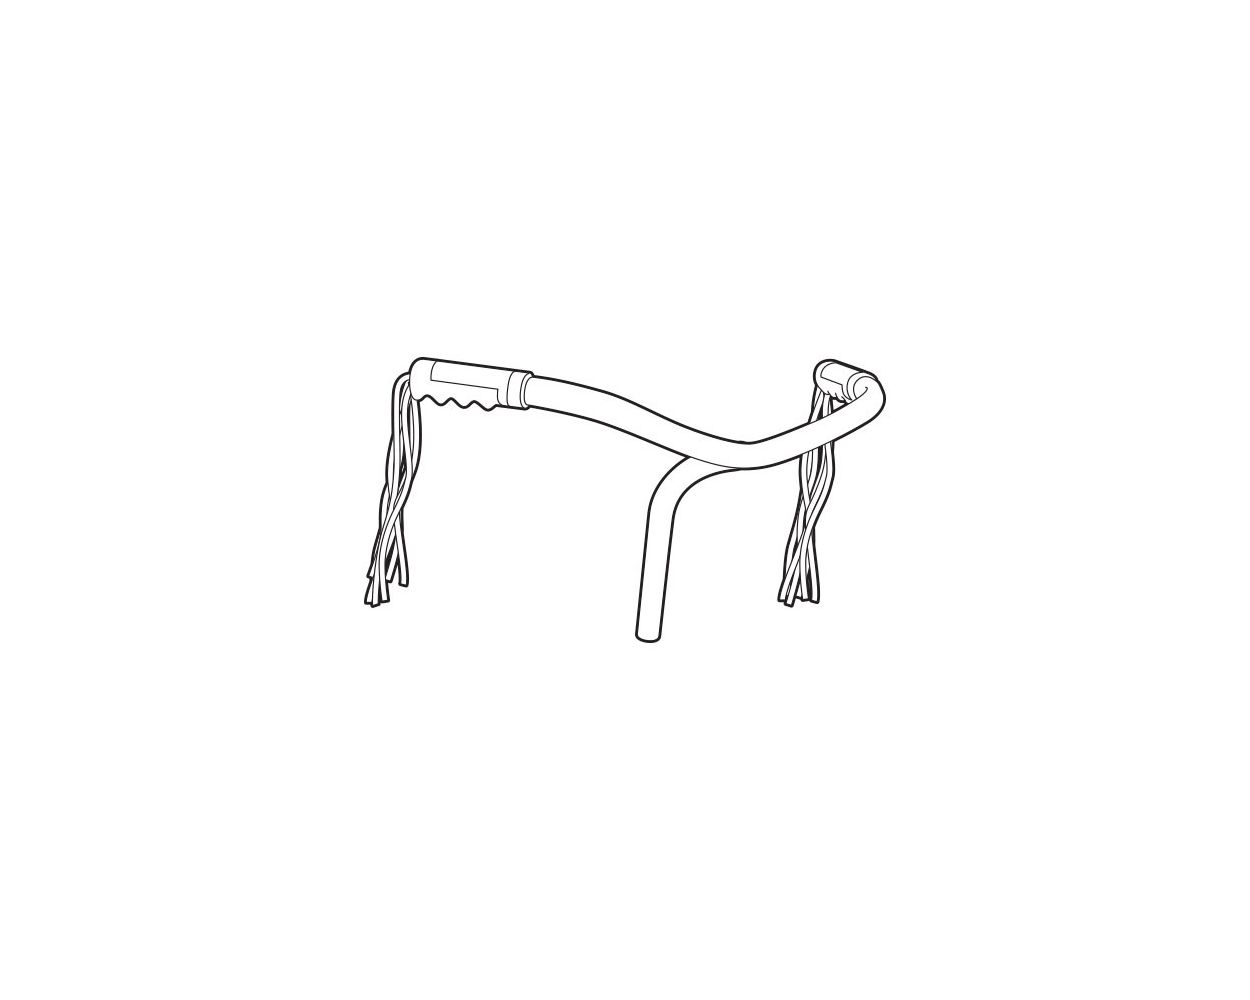 ASSEMBLY - HANDLE BAR